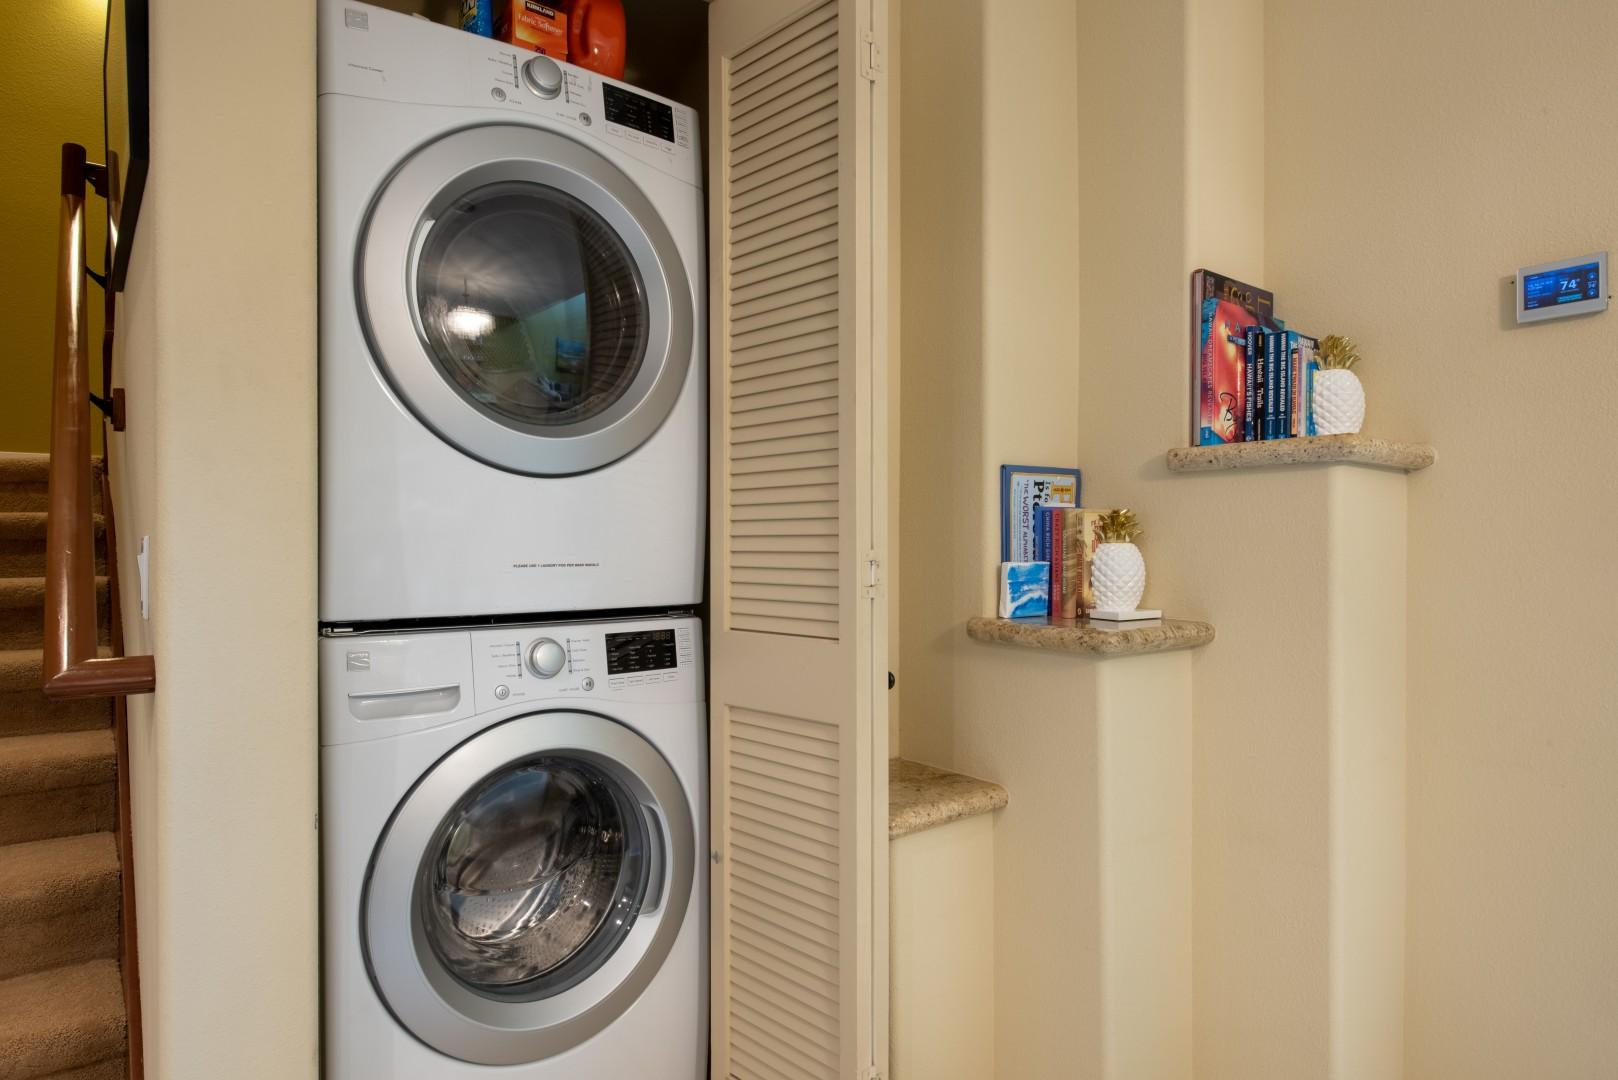 Stacked Washer Dryer In Unit for Guest's Convenience